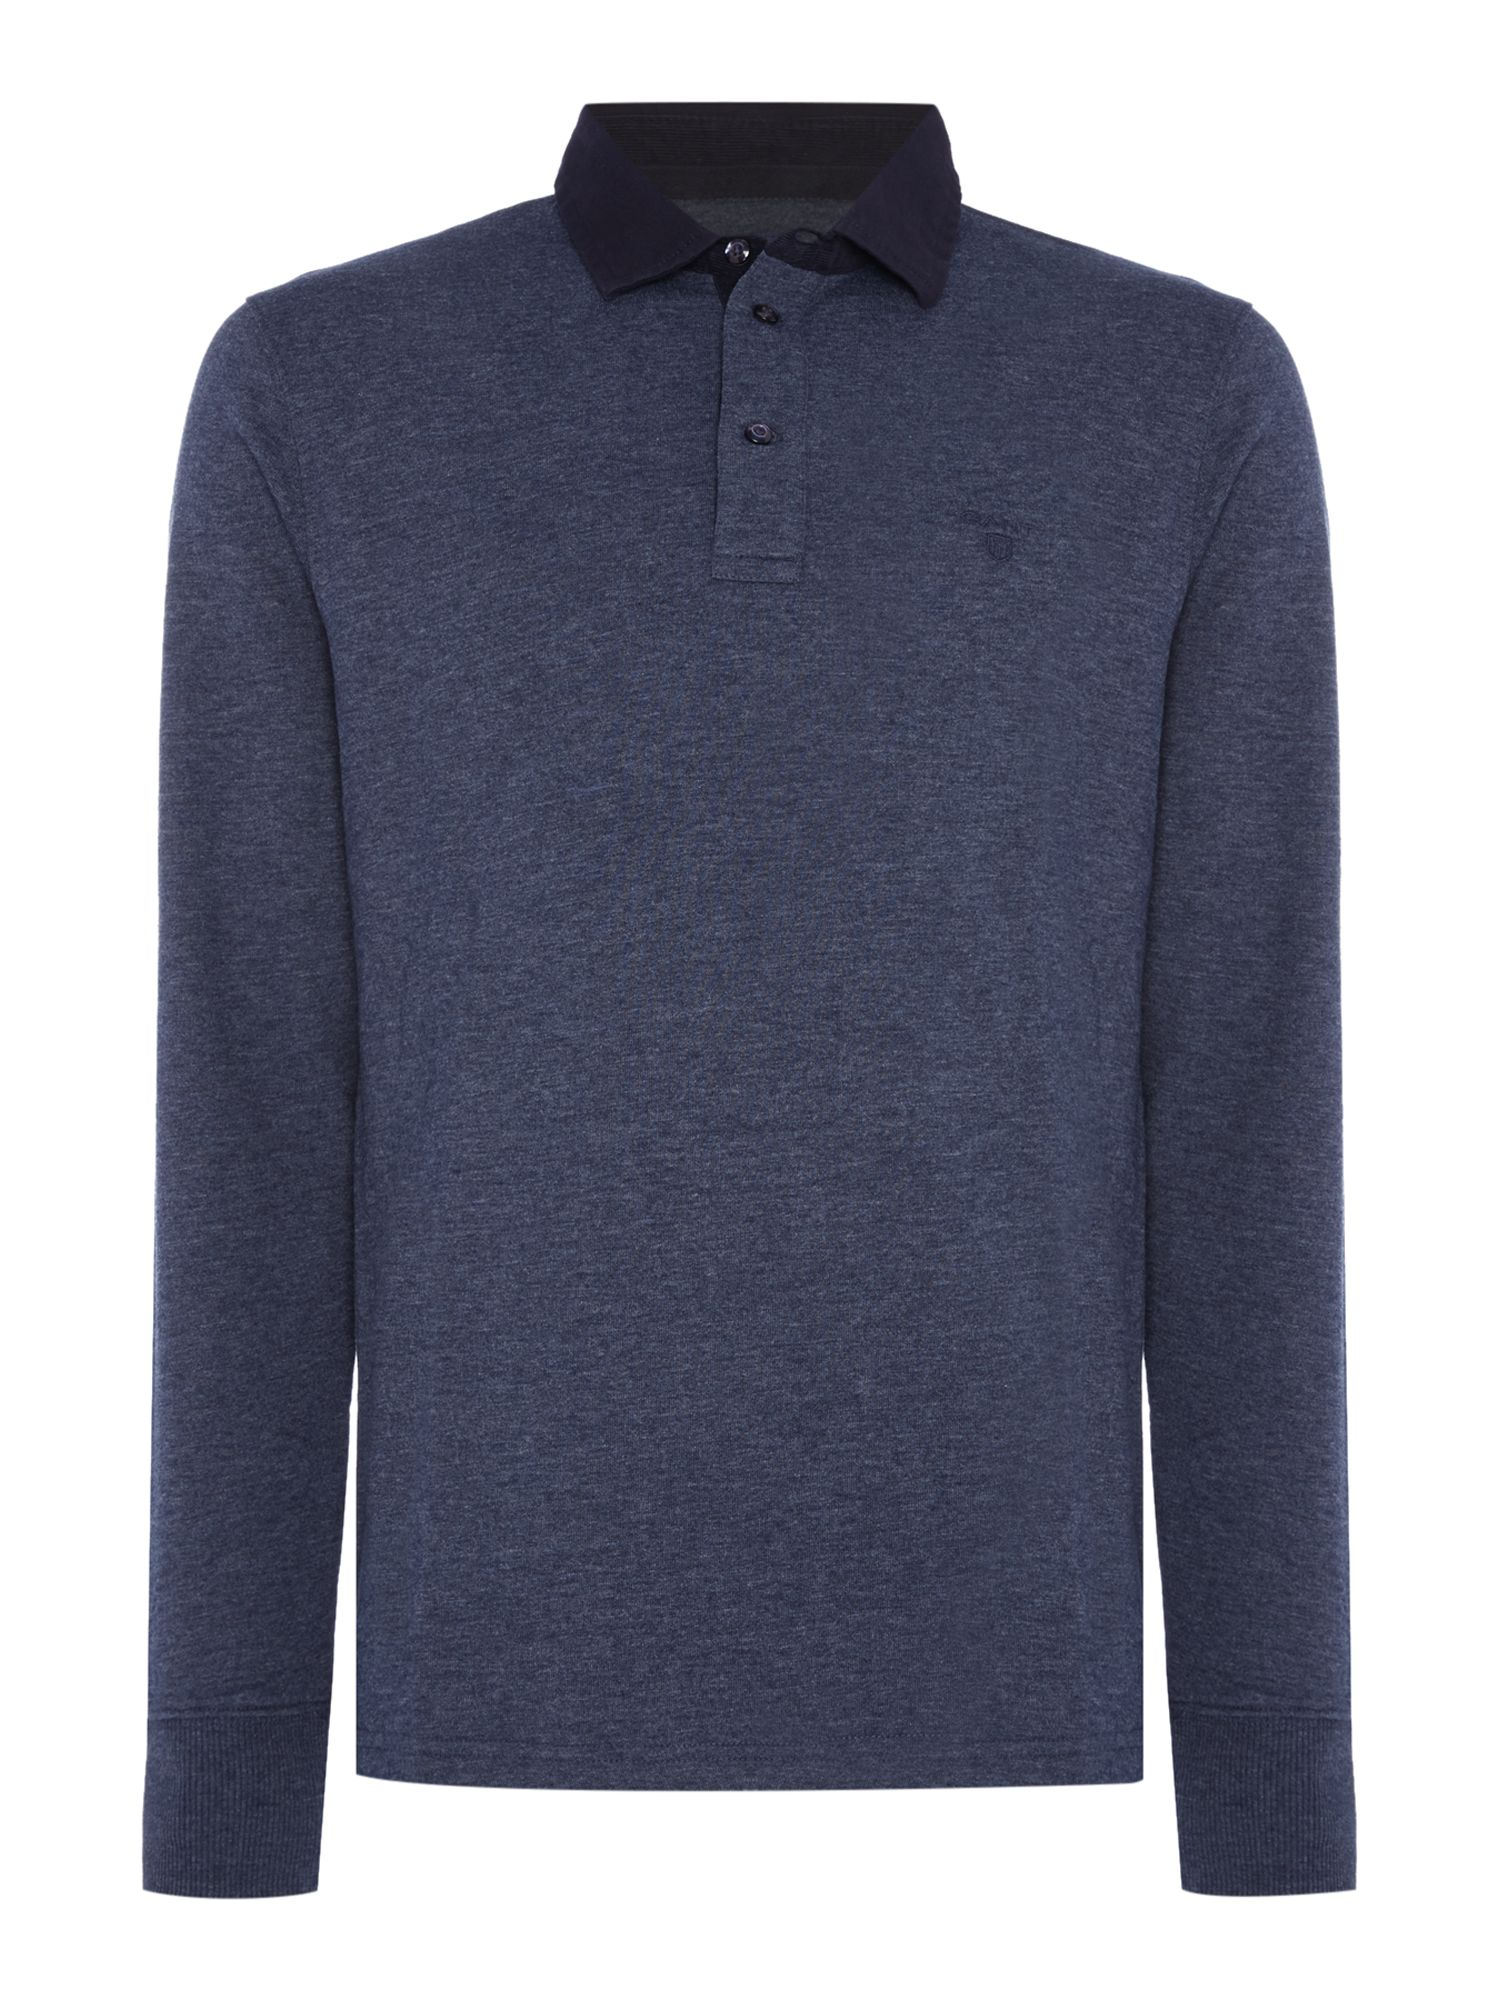 Men's Gant Long-Sleeve Plain Rugby, Blue